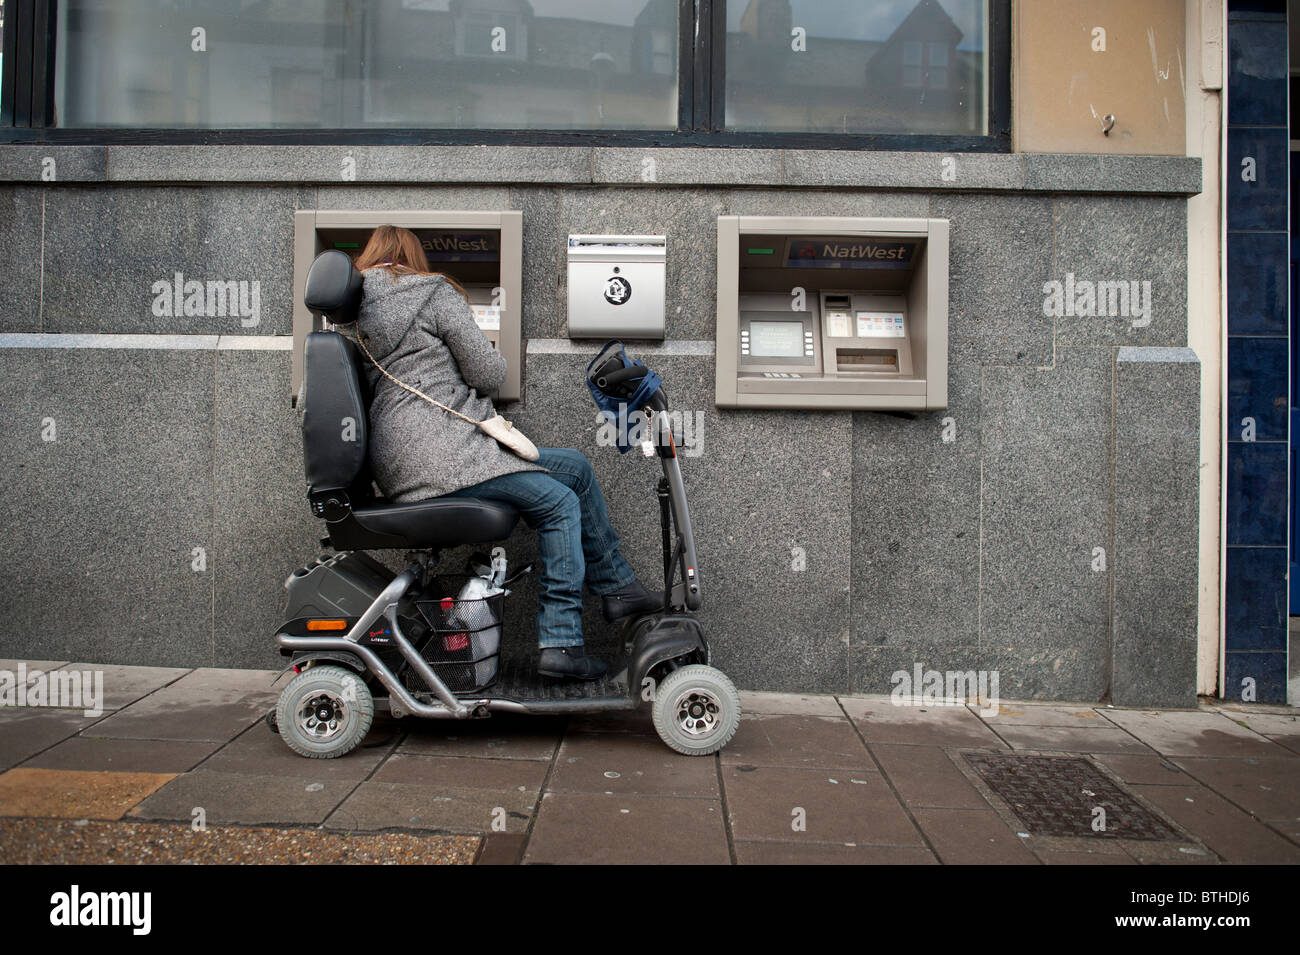 a woman in a powered wheelchair scooter using an ATM cash machine, UK - Stock Image